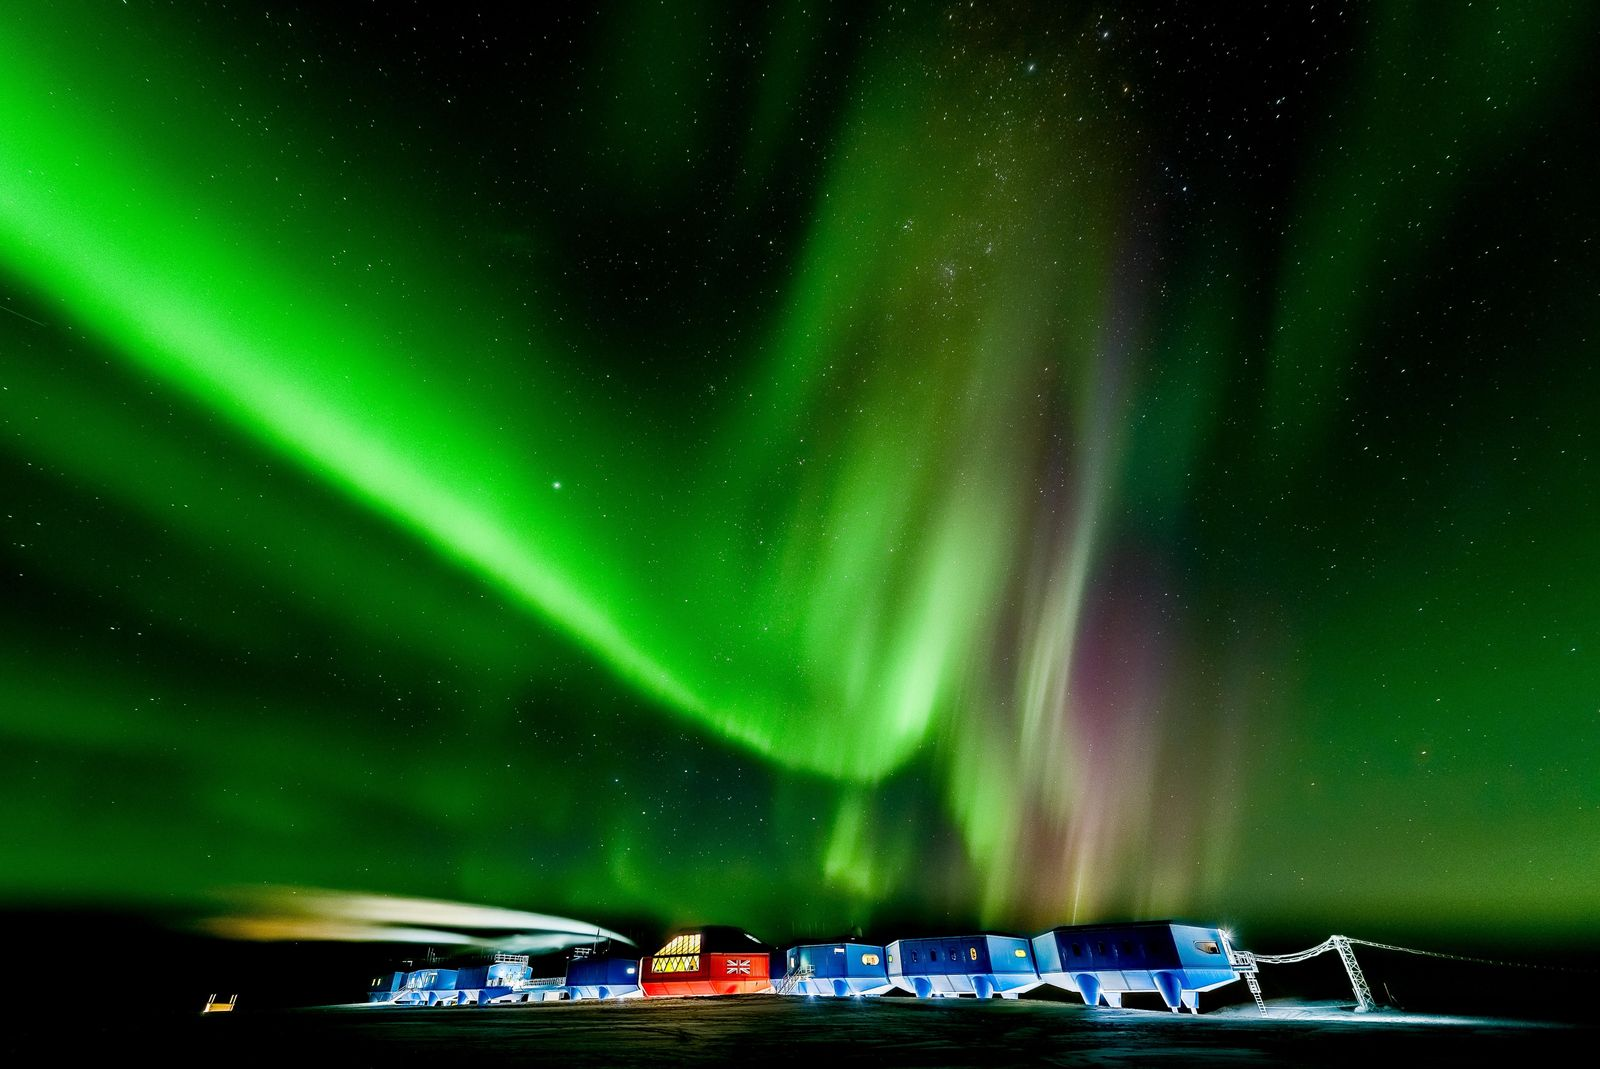 The aurora australis lights up the southern skies above Halley VI during winter, 2016. Halley VI is the ...